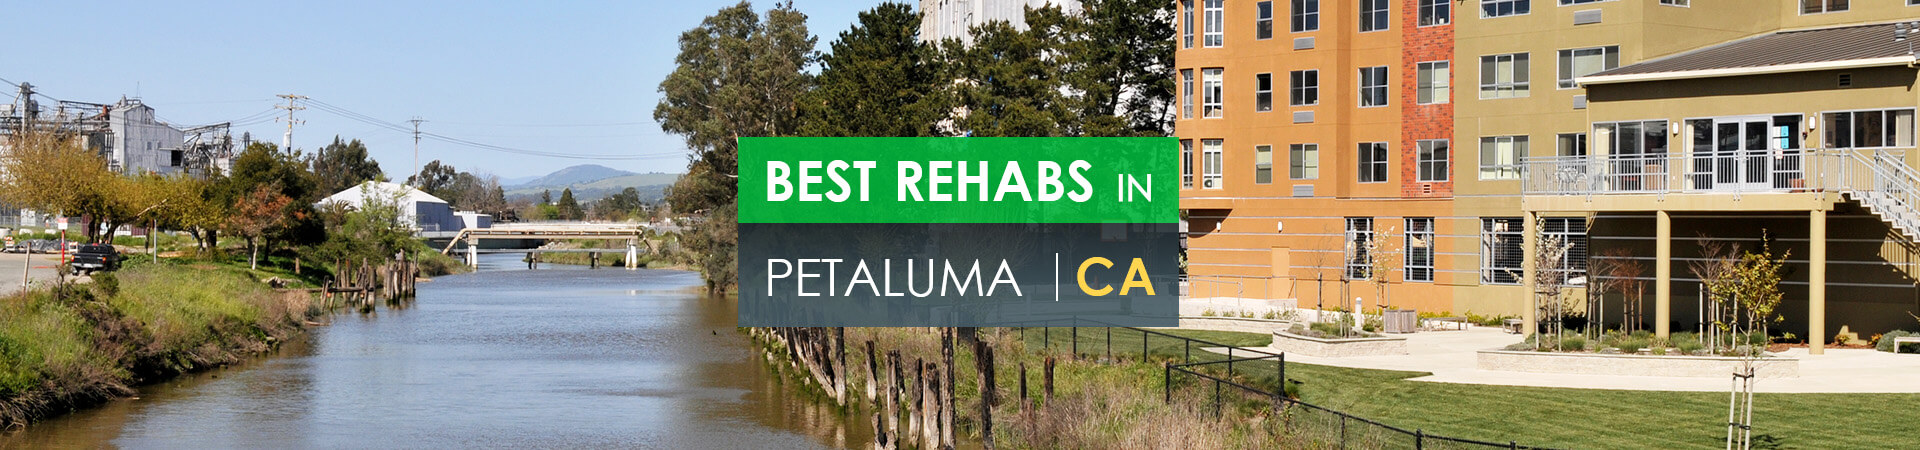 Best rehabs in Petaluma, CA